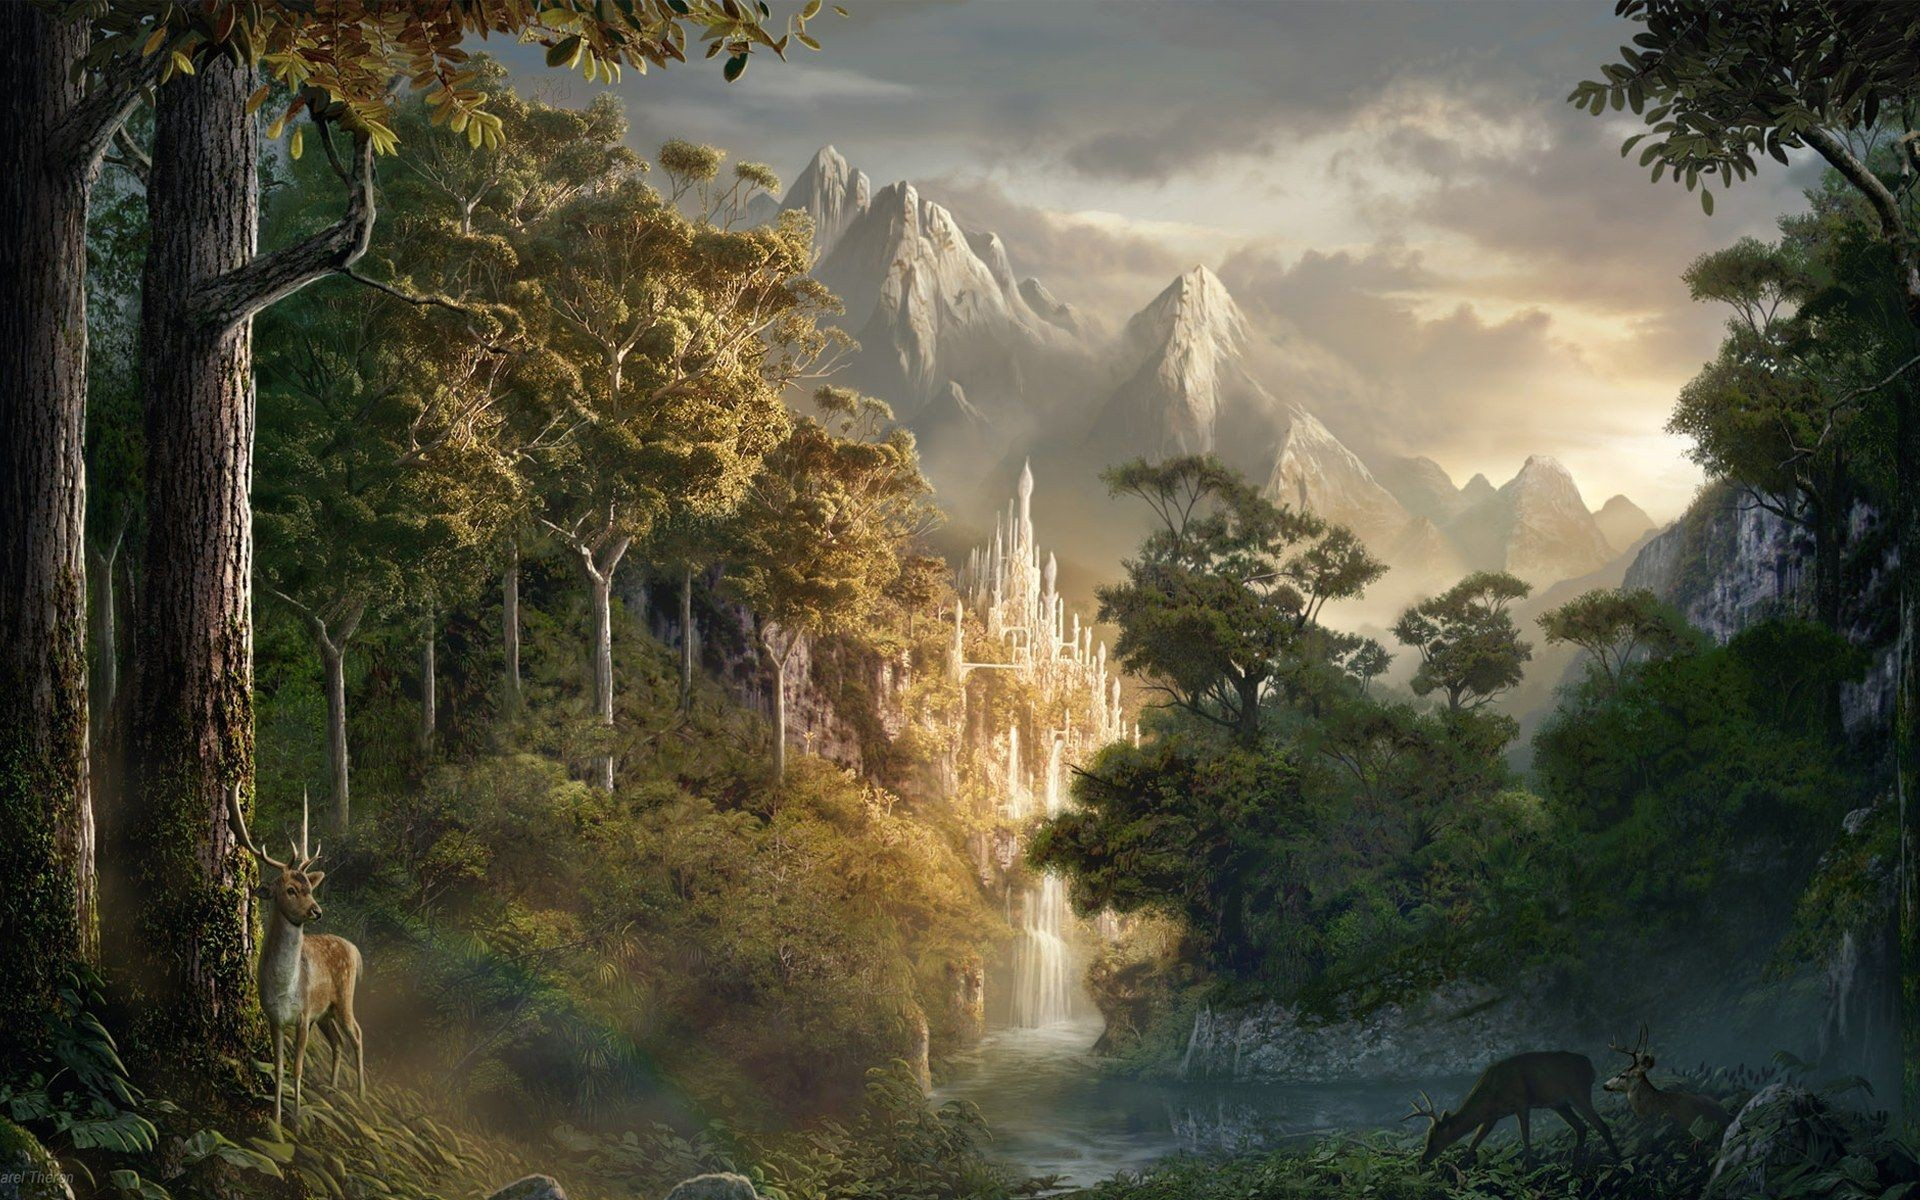 Hd Wallpapers That Will Take You To World Of Fantasy: Fantasy Desktop Wallpaper ·① Download Free Cool Full HD